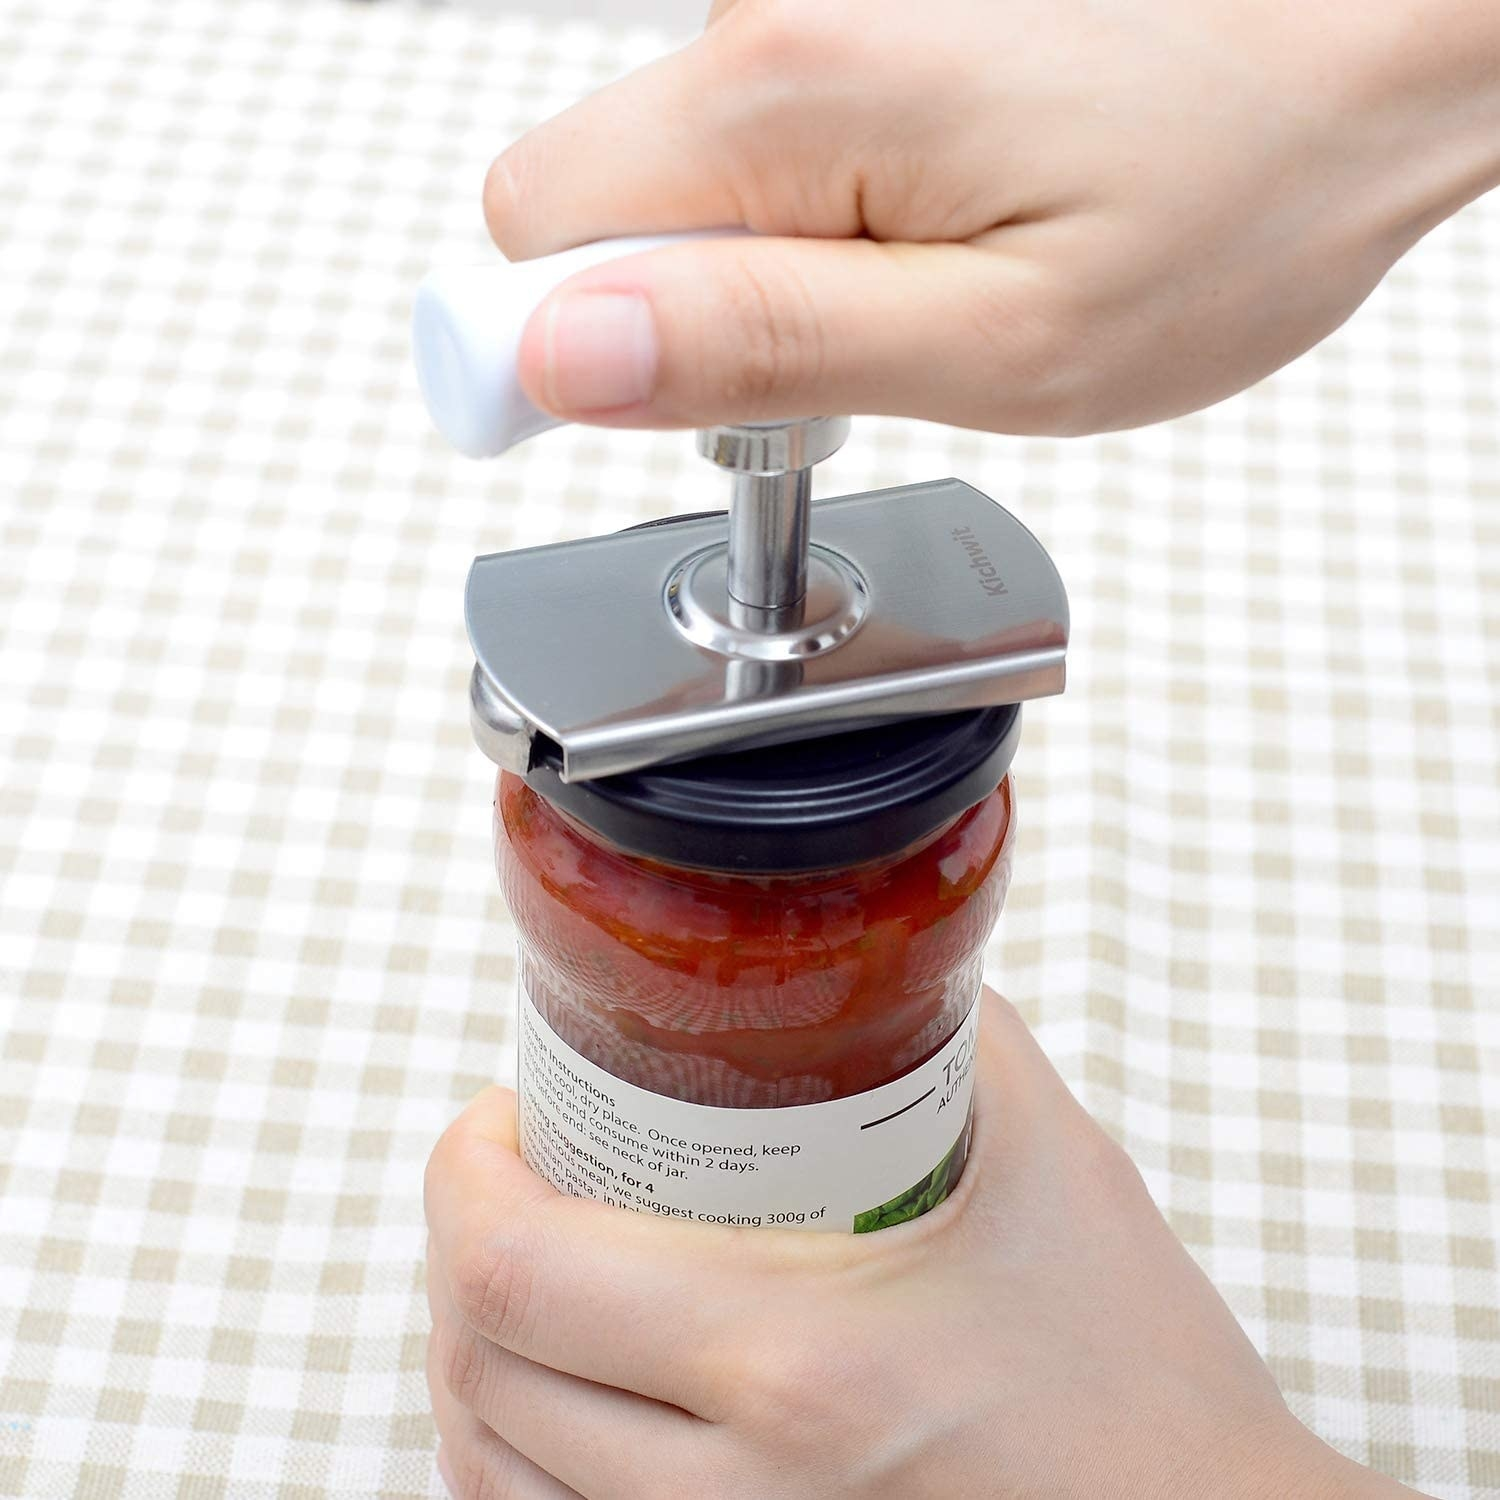 person using the lid opener to twist open the lid of a jar